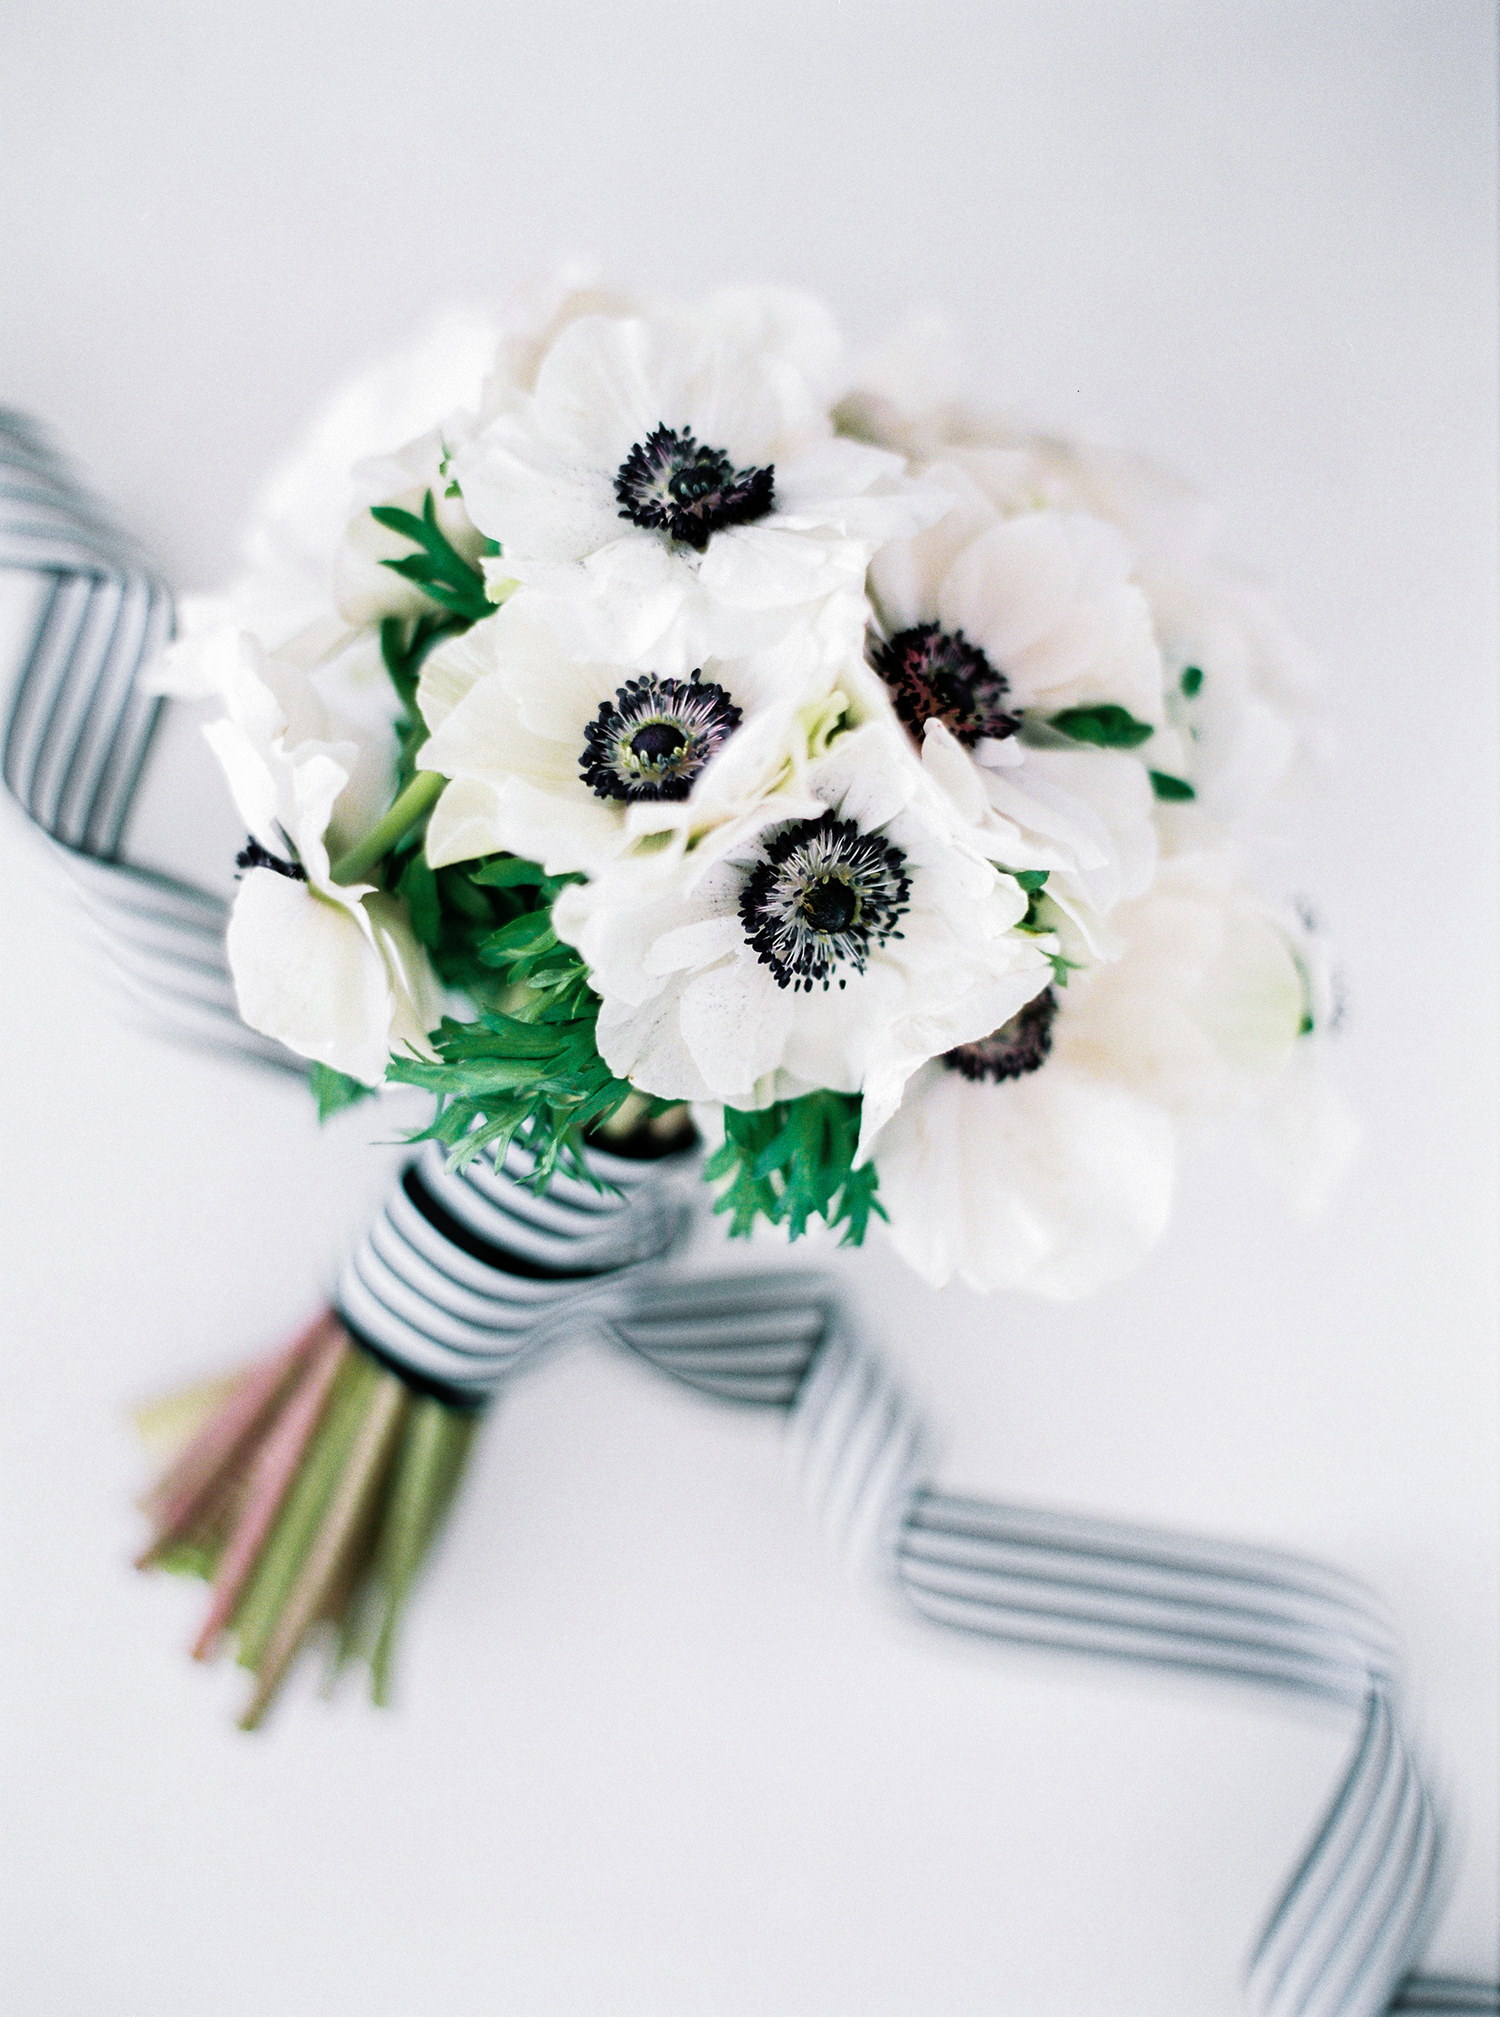 Her Black-and-White Bouquet